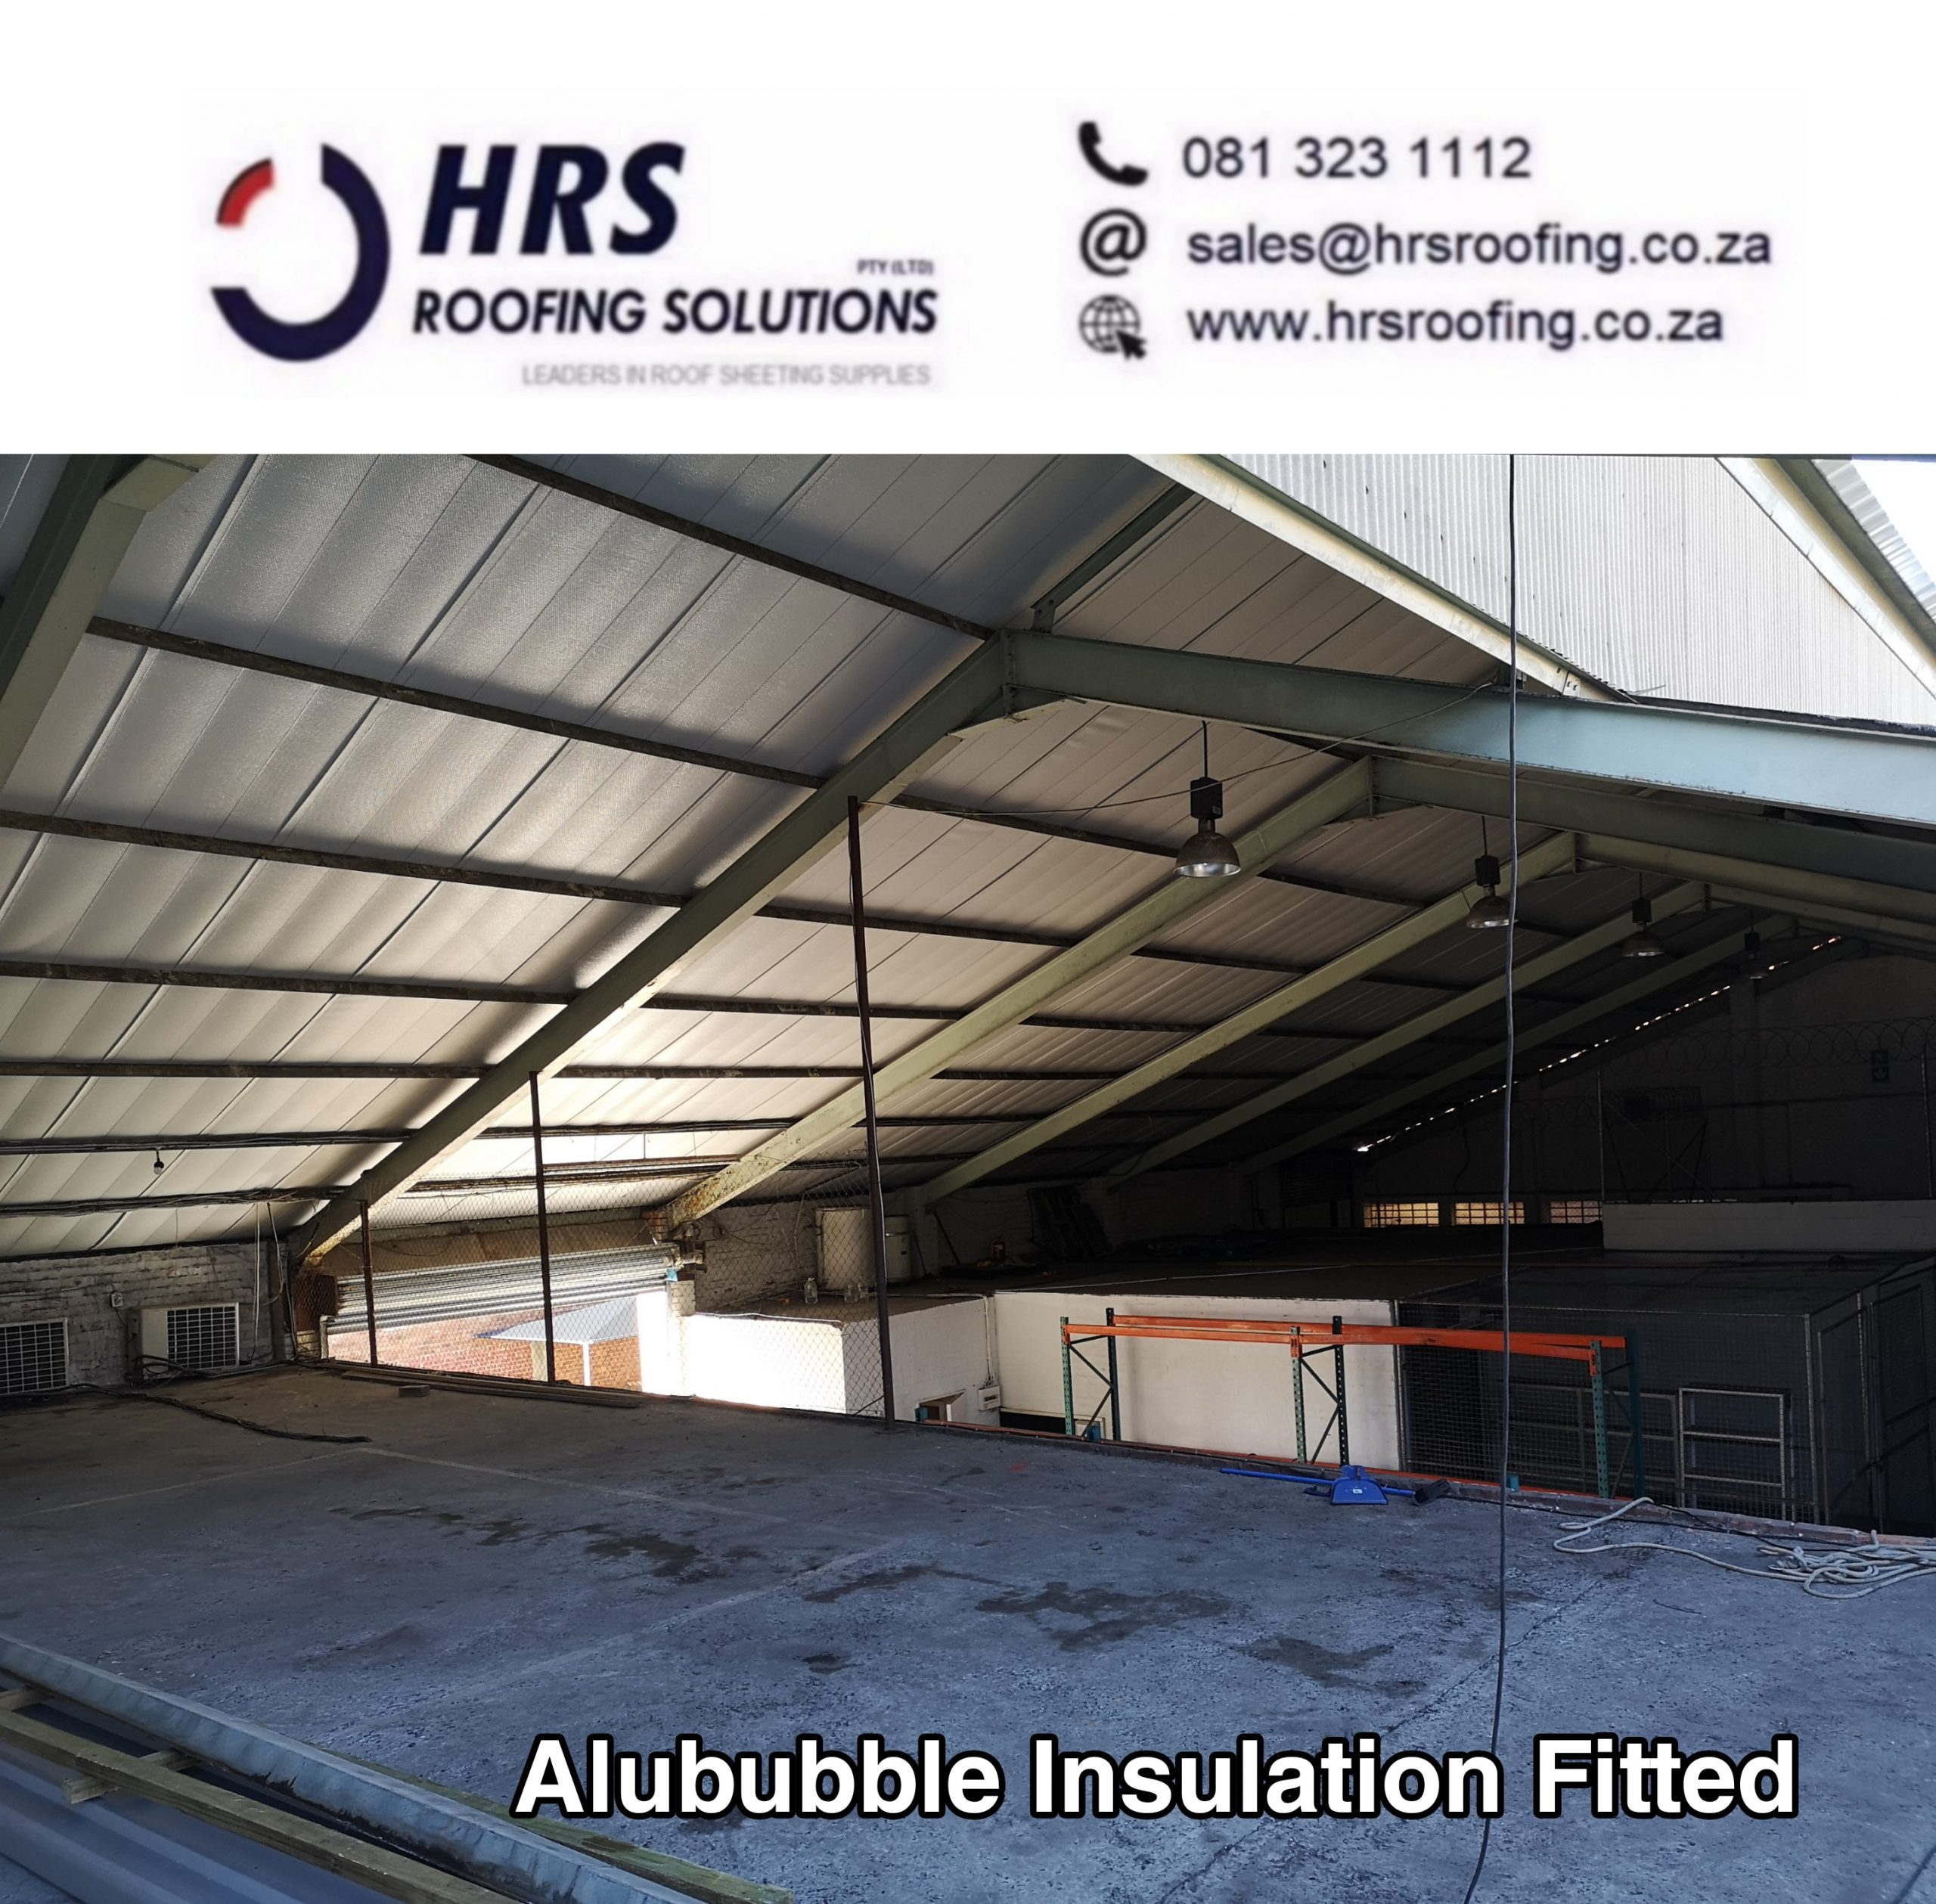 roofing Contractors cape Town hrs roofing solutions Asbestos Roofing workers scaled - Roofing Gallery